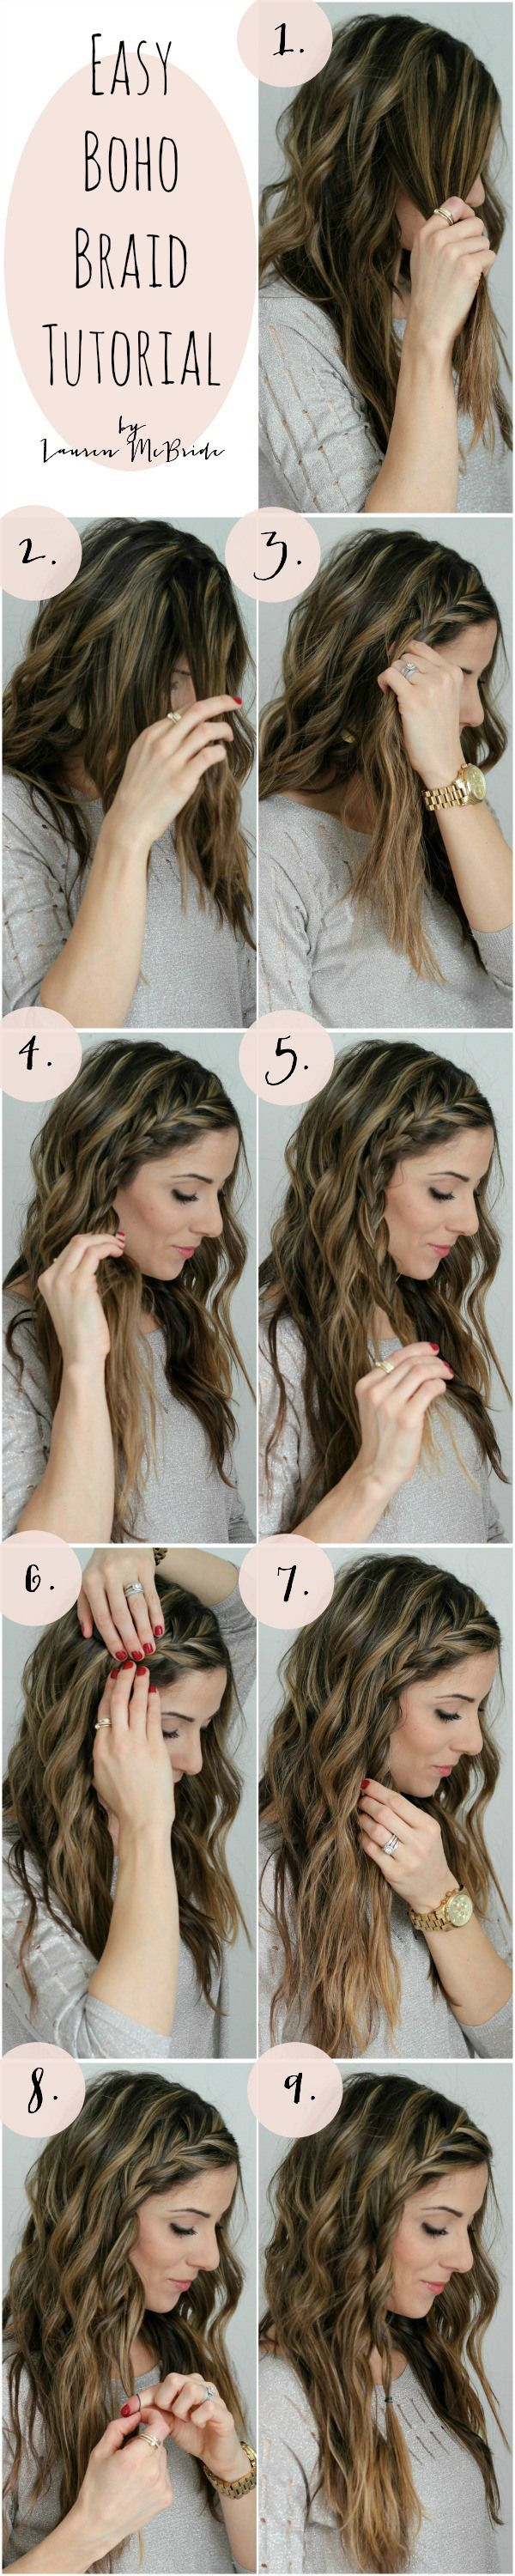 Swell 1000 Images About Braided Hairstyles On Pinterest Updo Crown Hairstyle Inspiration Daily Dogsangcom